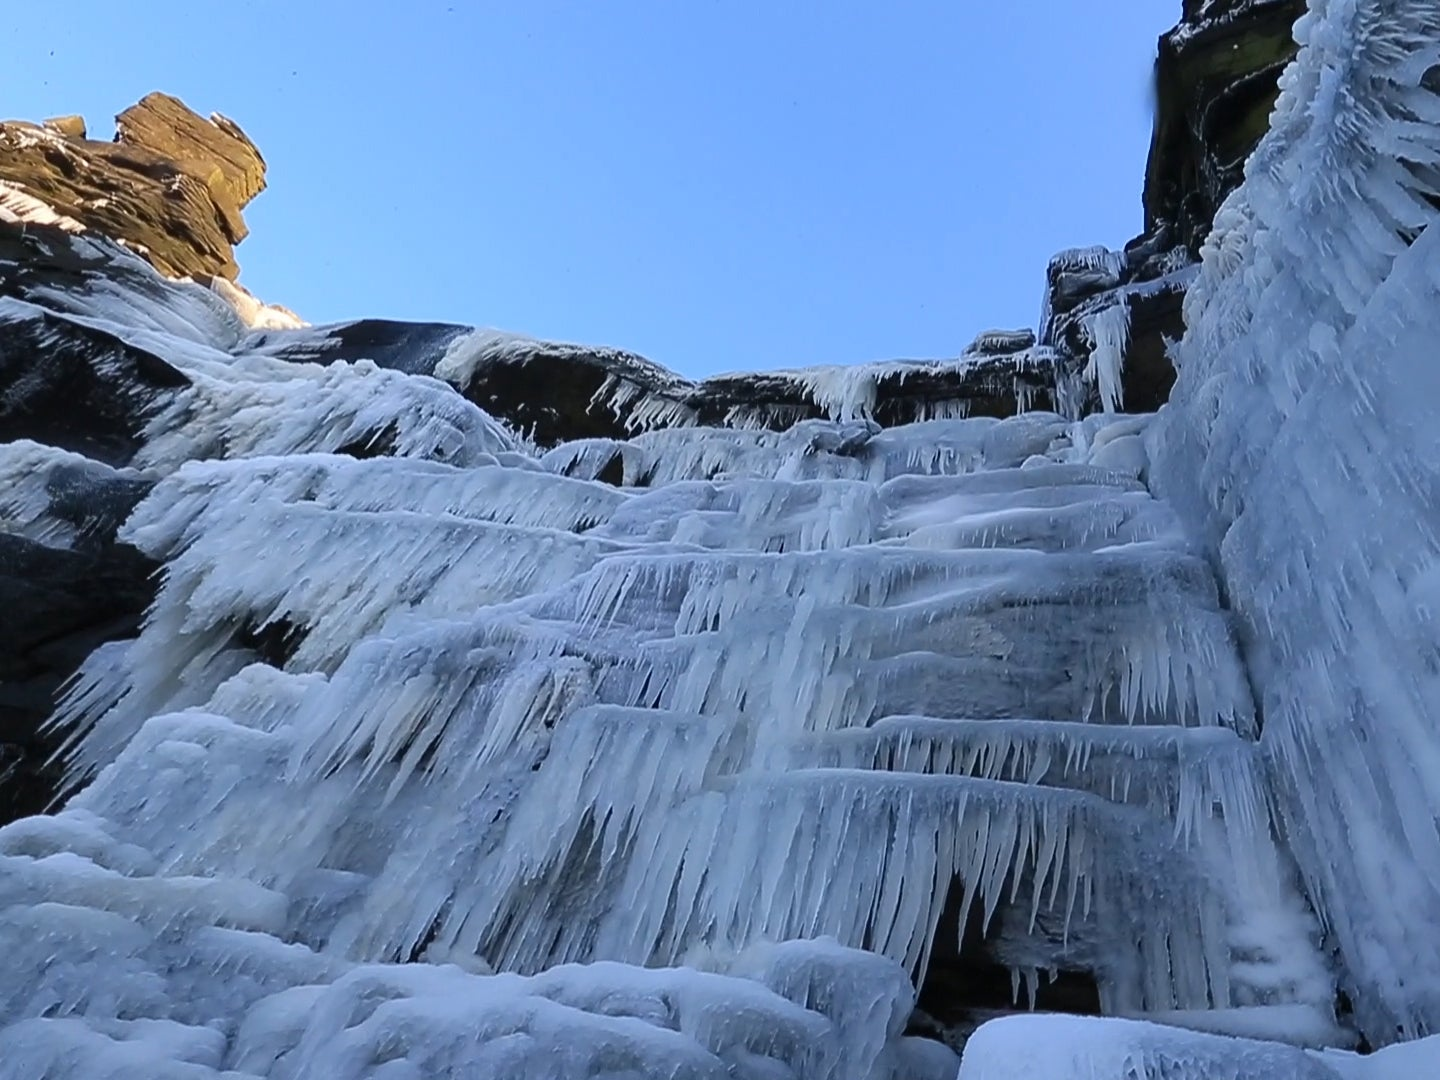 Video Shows Waterfall Completely Frozen Over Following